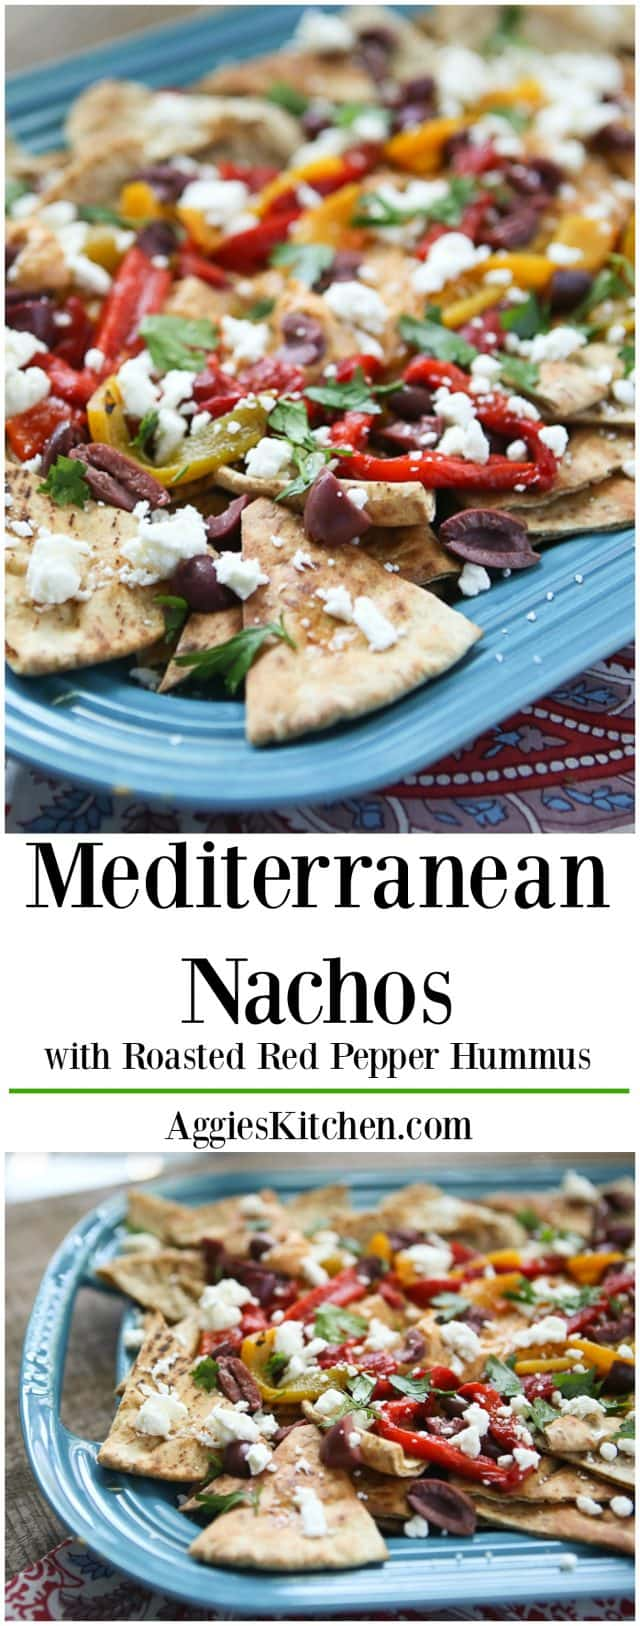 Say hello to your new favorite appetizer - Mediterranean Nachos with Roasted Red Pepper Hummus! Topped with Sabra Hummus, roasted peppers, olives, feta and fresh herbs, you can't go wrong with this one! Recipe via aggieskitchen.com